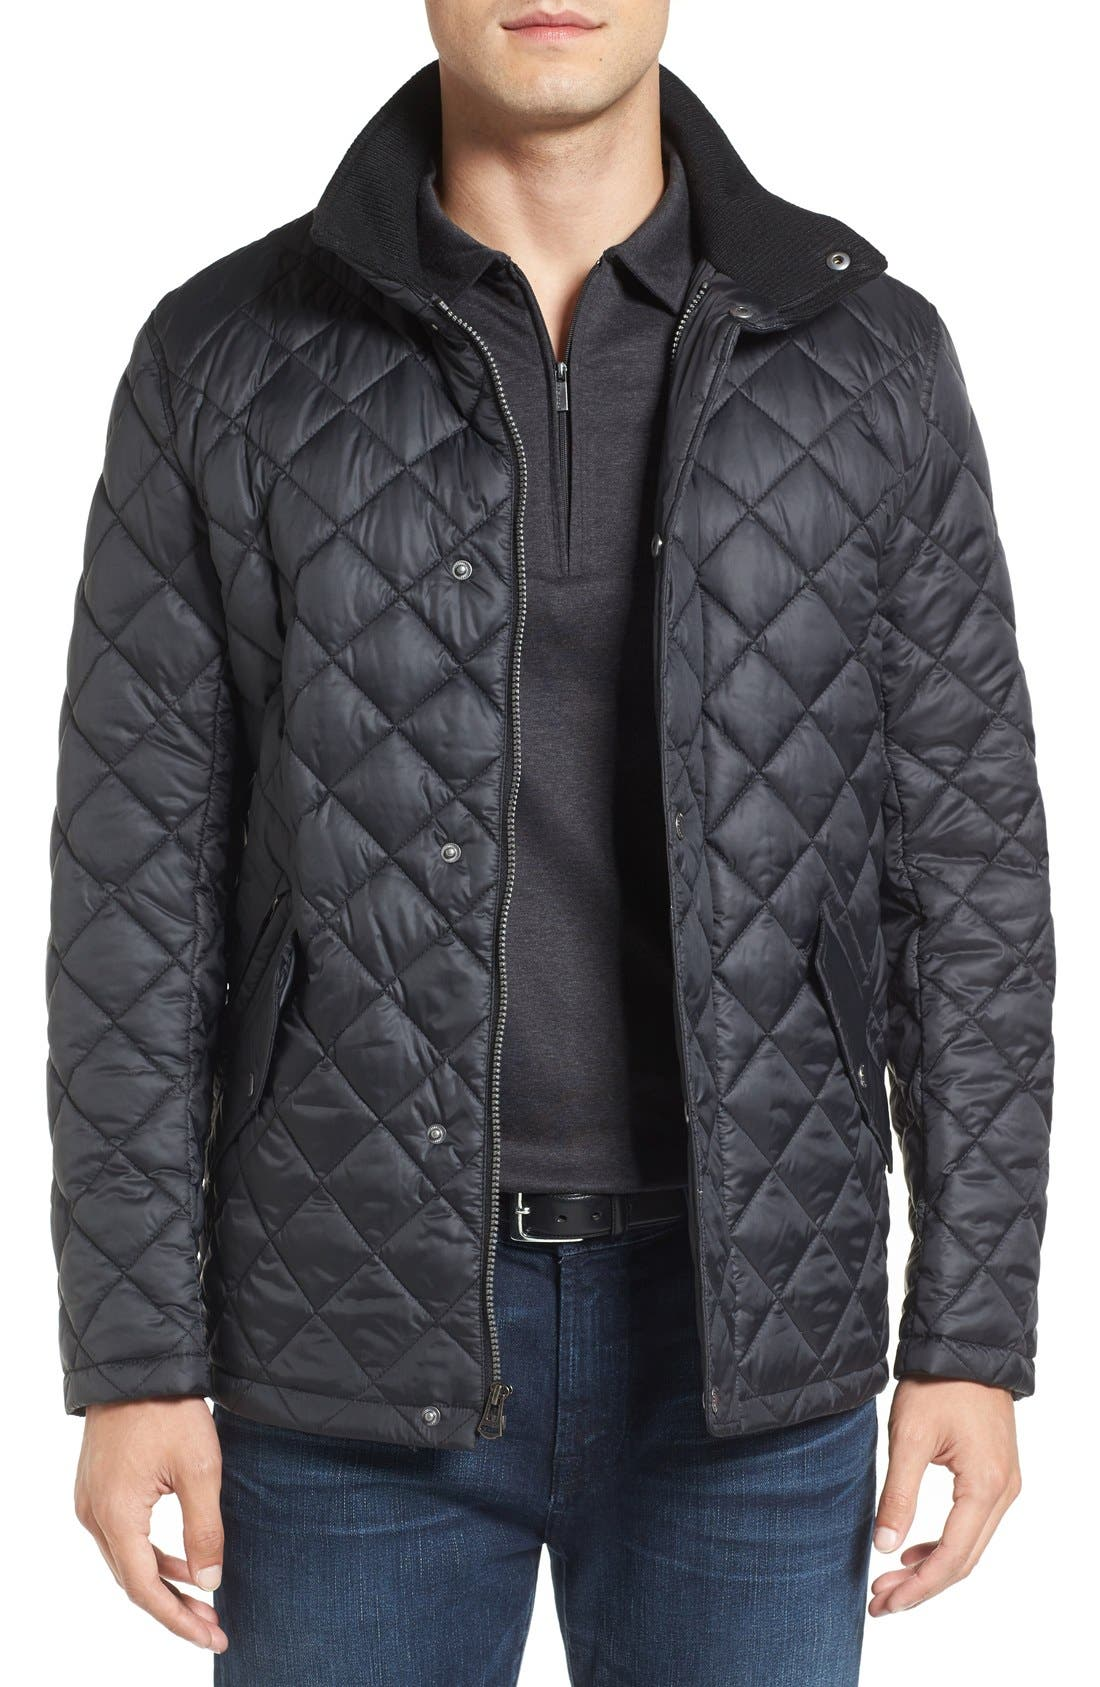 Diamond Quilted Jacket,                             Main thumbnail 3, color,                             Navy